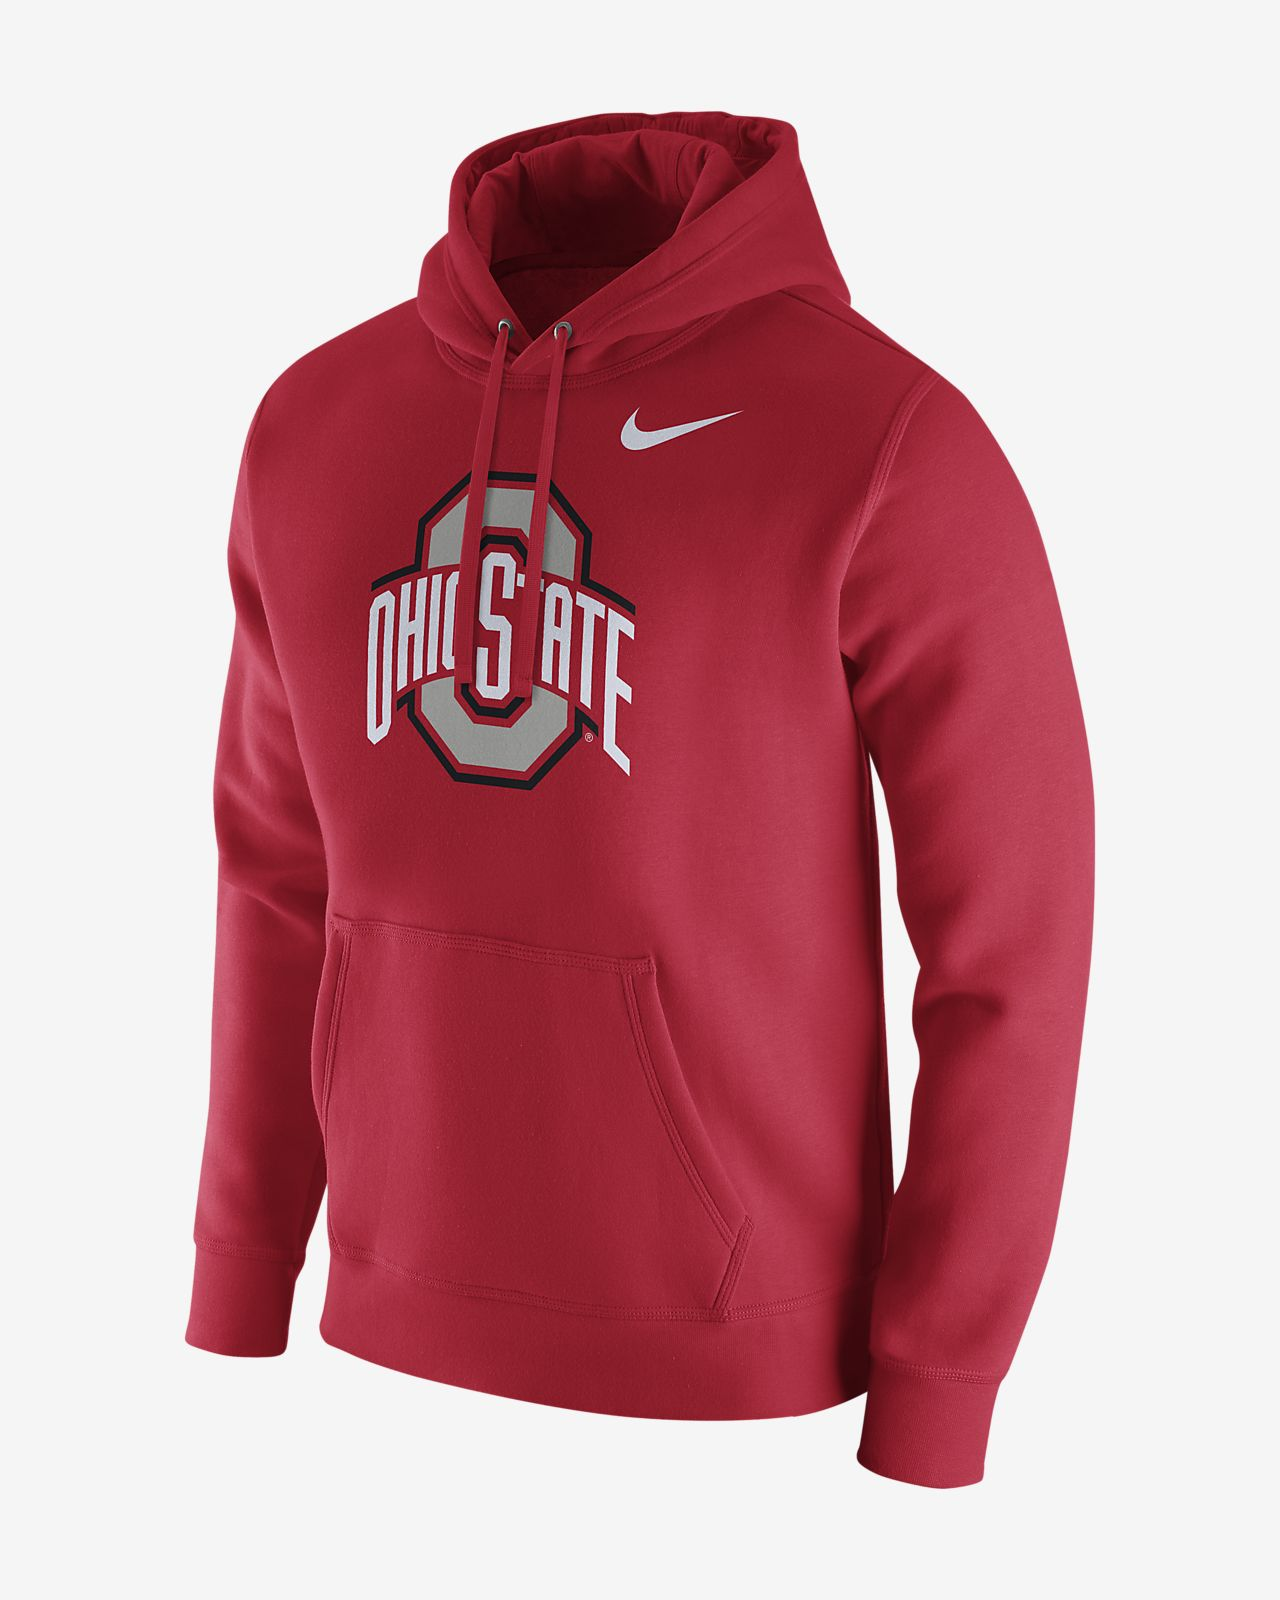 9dc9632cfa46 Nike College (Ohio State) Men s Fleece Hoodie. Nike.com